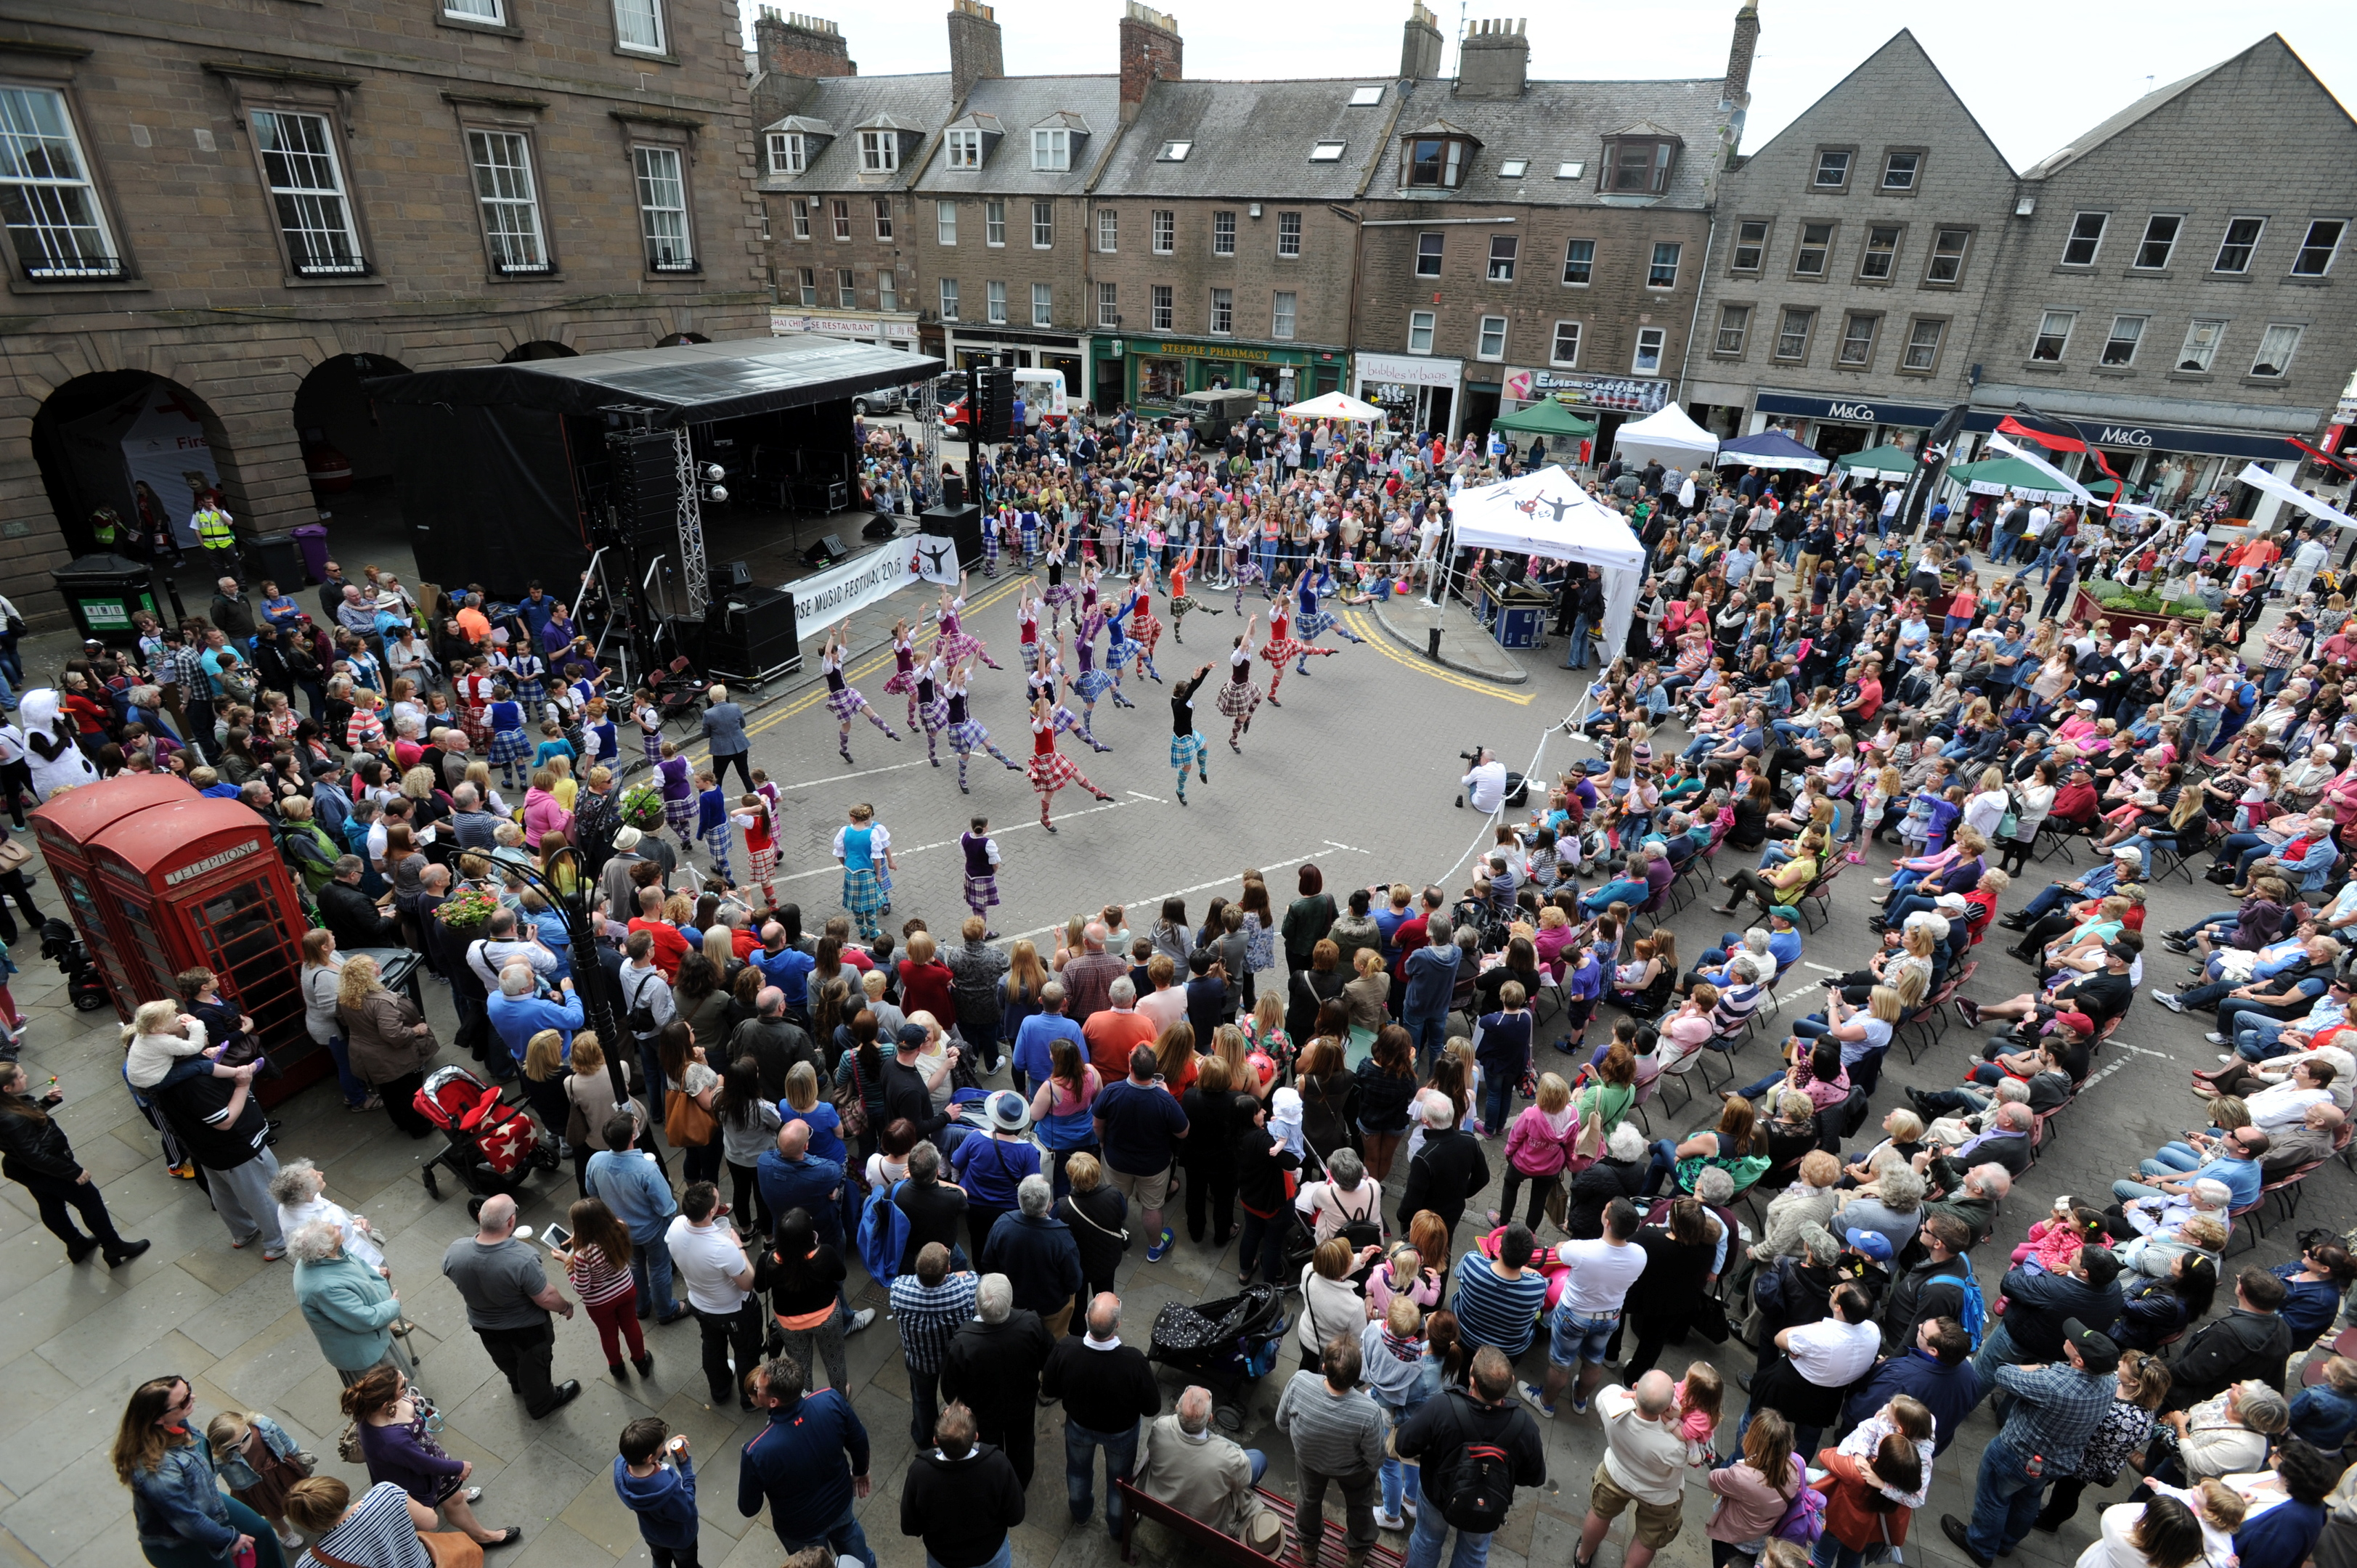 show:  Thousands of revellers attend the Montrose Music Festival every year.